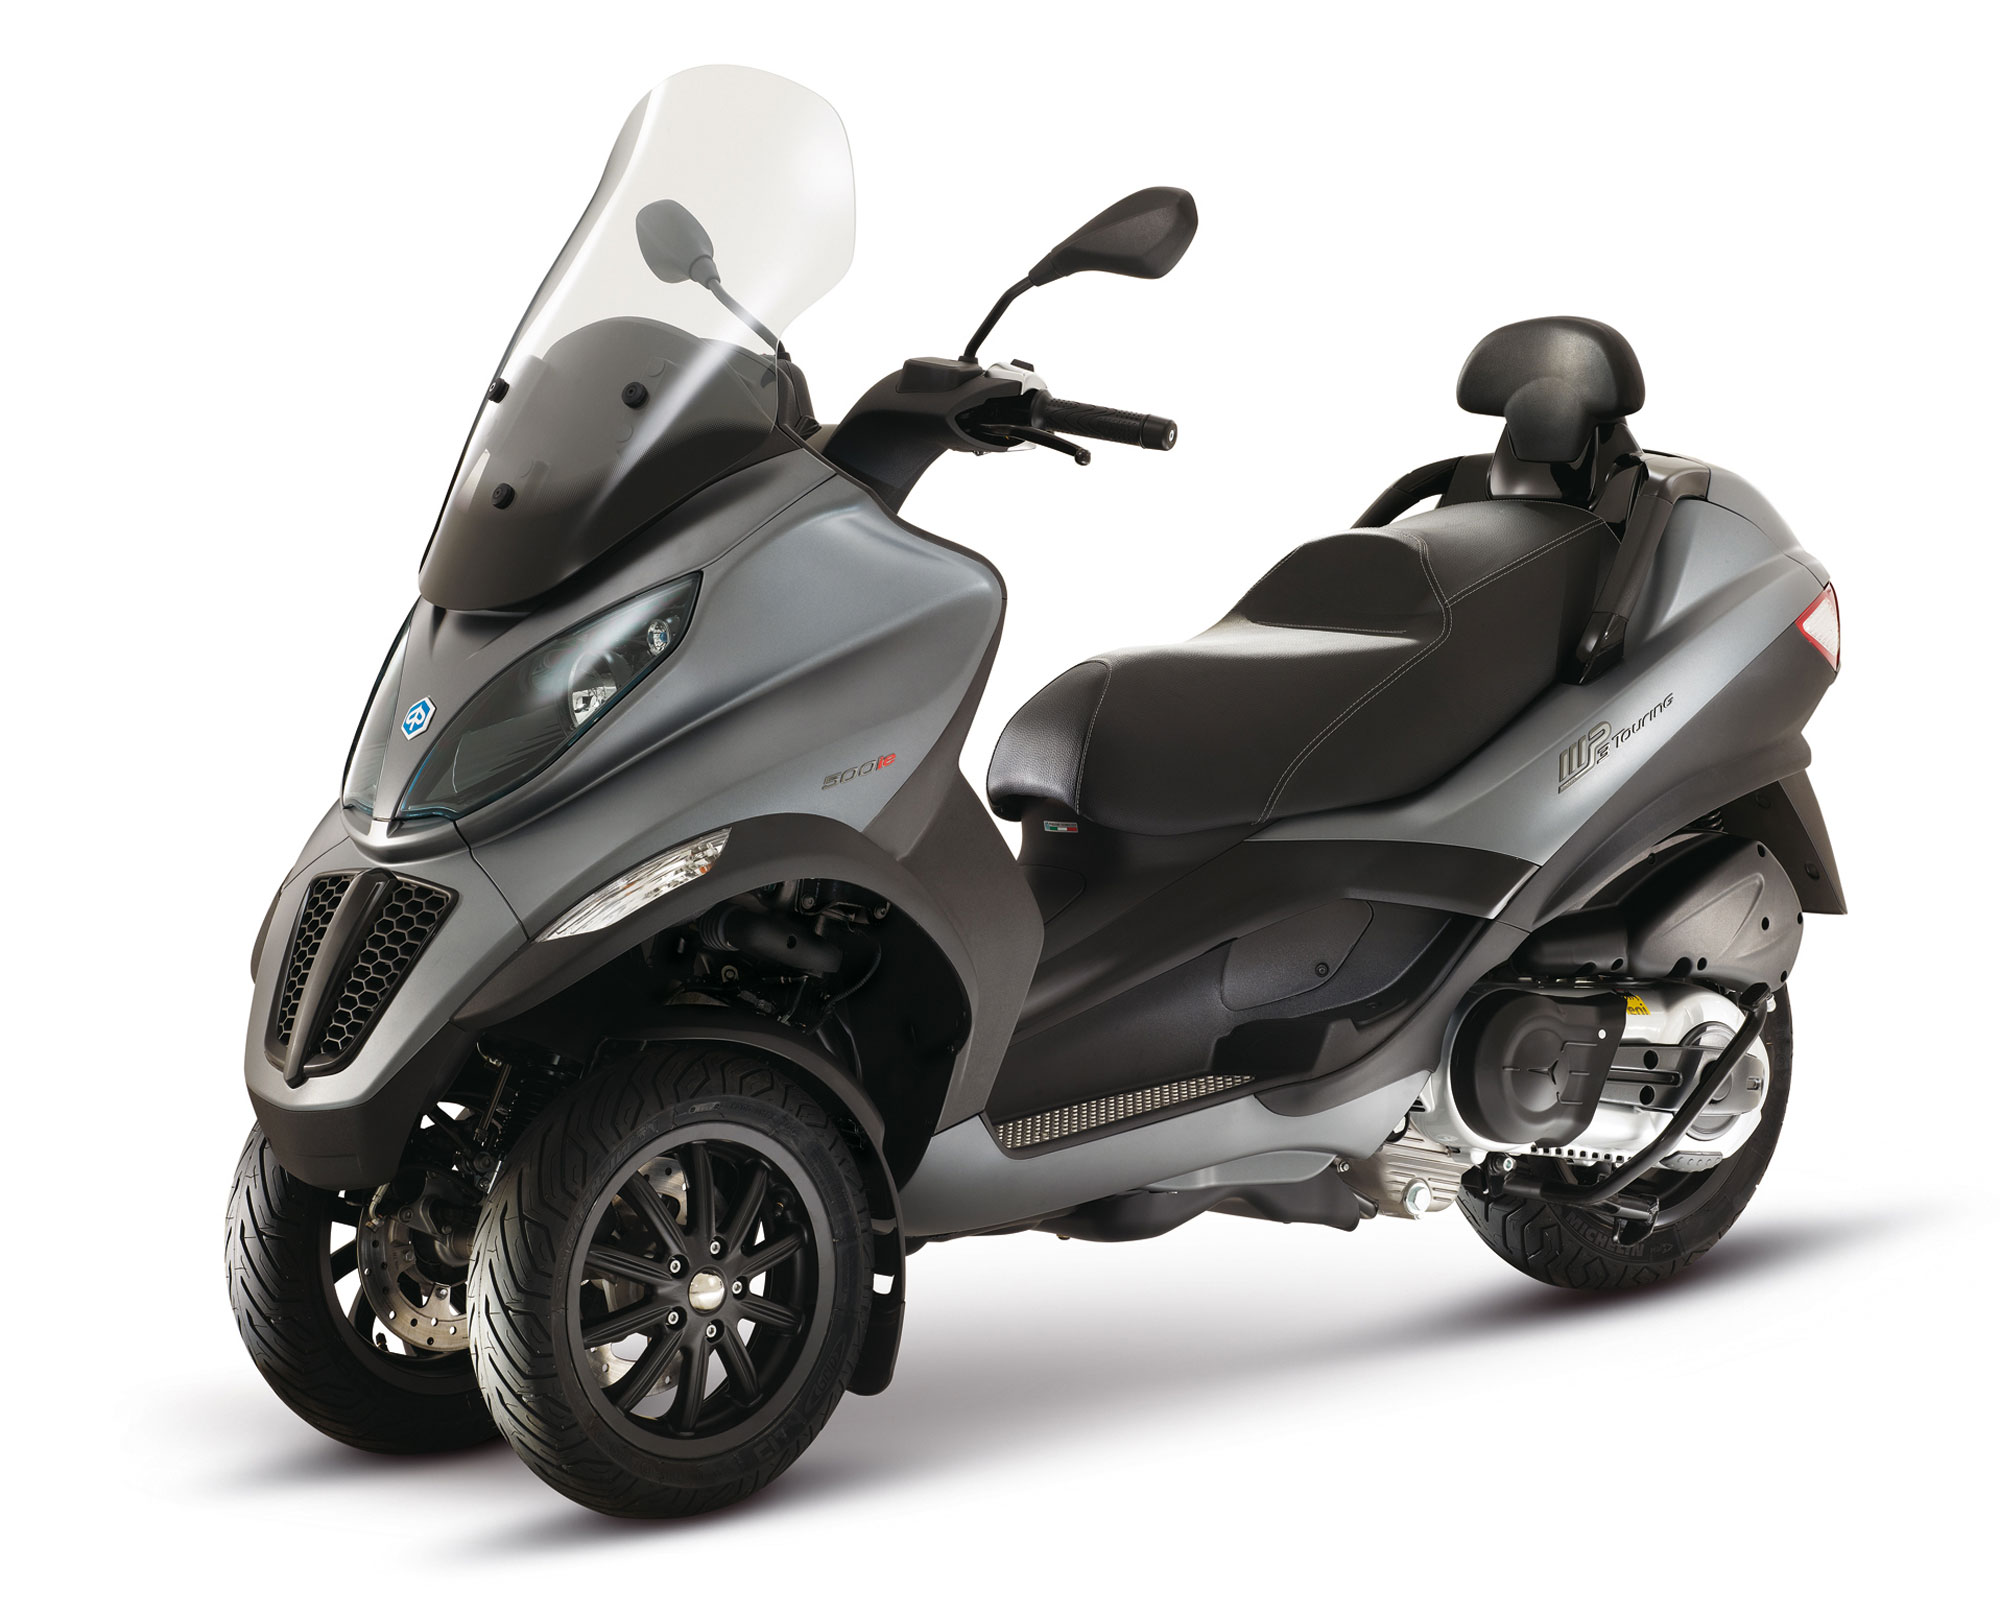 Piaggio MP3 300 Hybrid 2011 images #120534